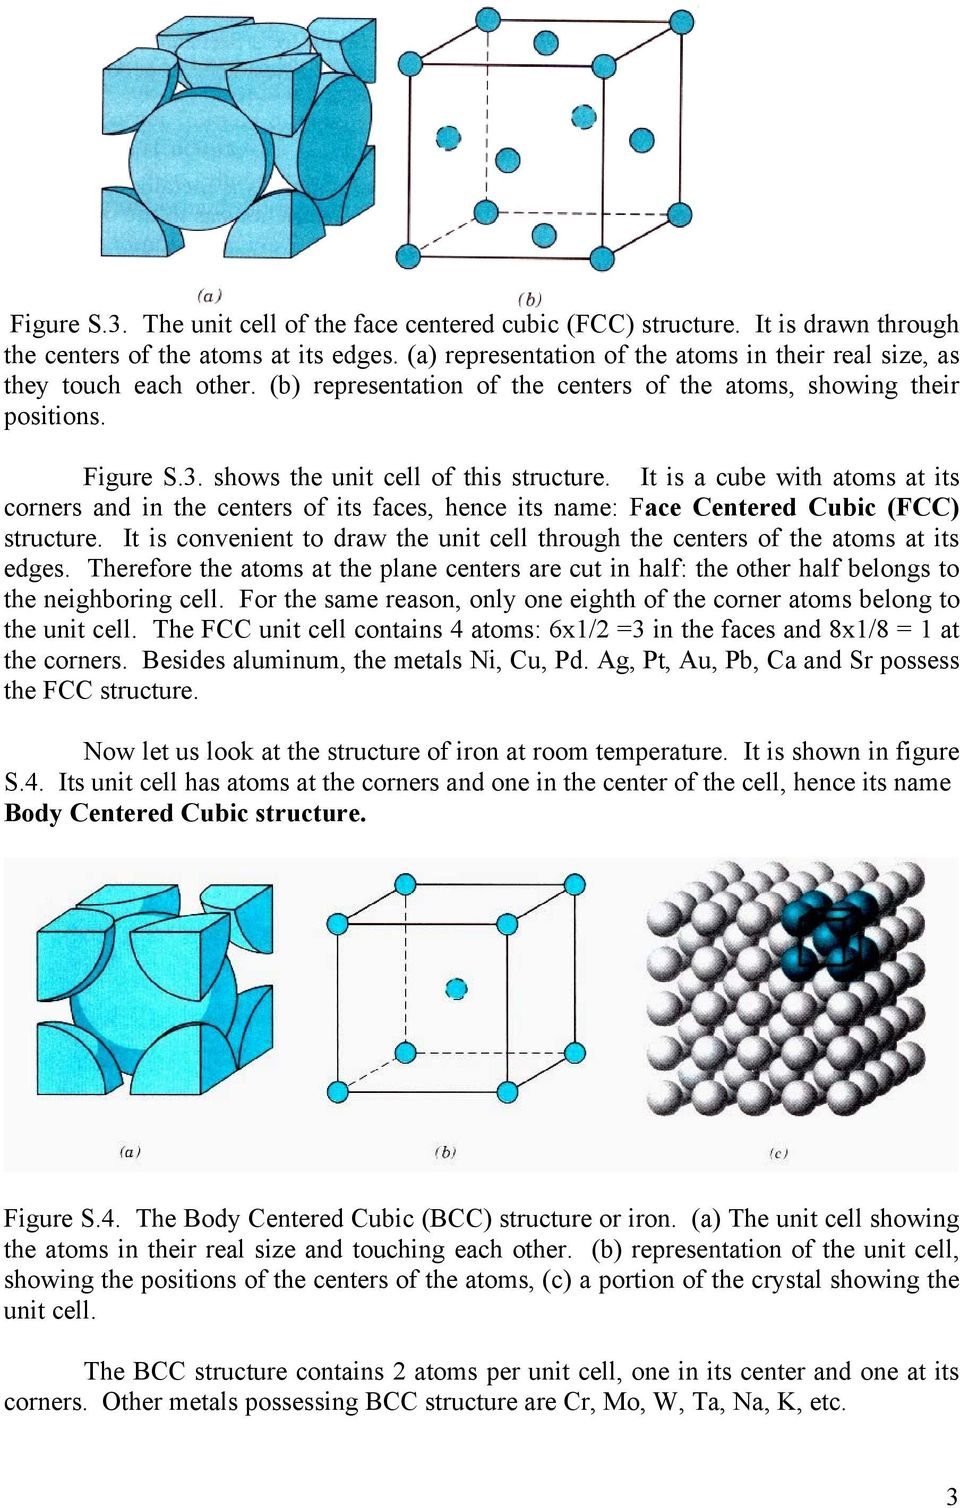 shows the unit cell of this structure. It is a cube with atoms at its corners and in the centers of its faces, hence its name: Face Centered Cubic (FCC) structure.